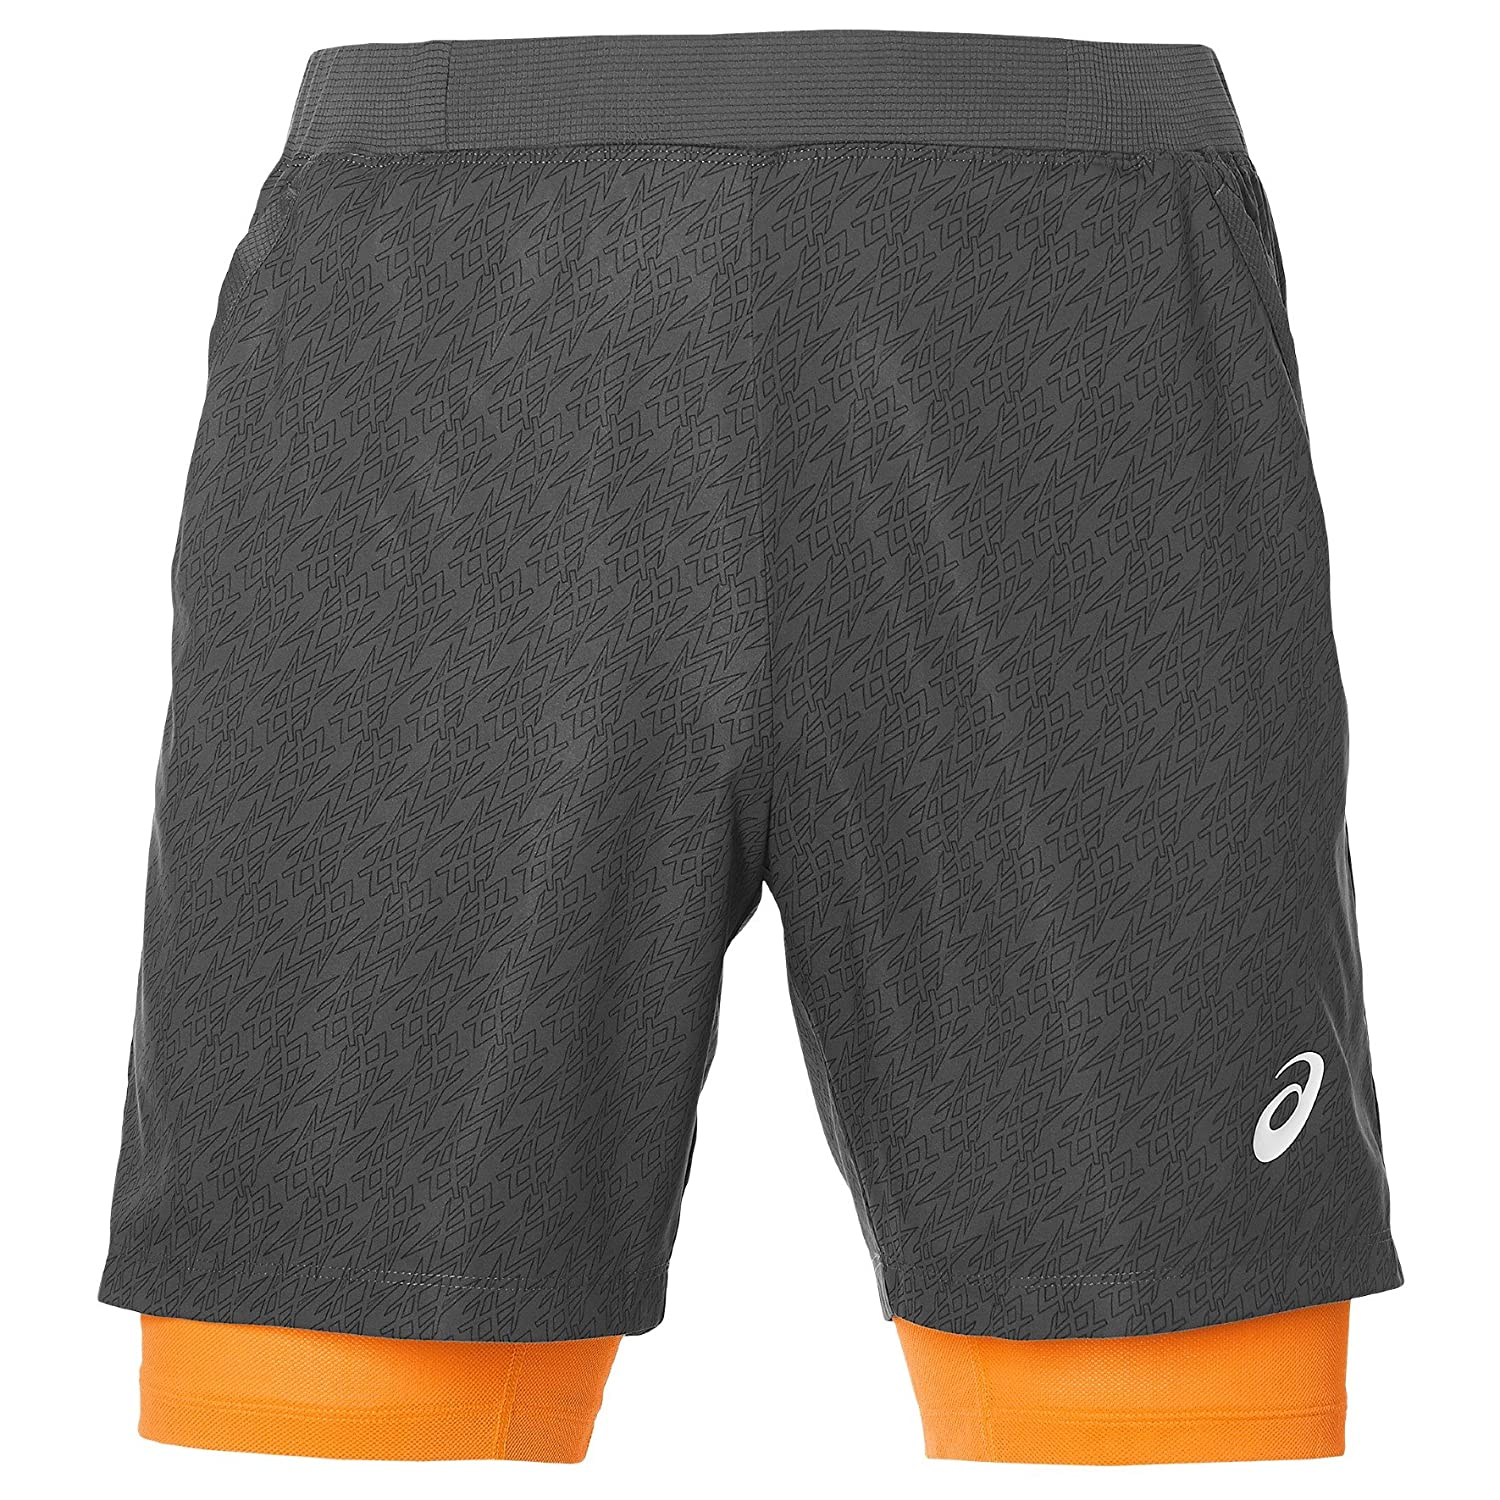 ASICS Padel Player GPX 7IN 2IN1 Pantalones Cortos, Hombre, Gris ...